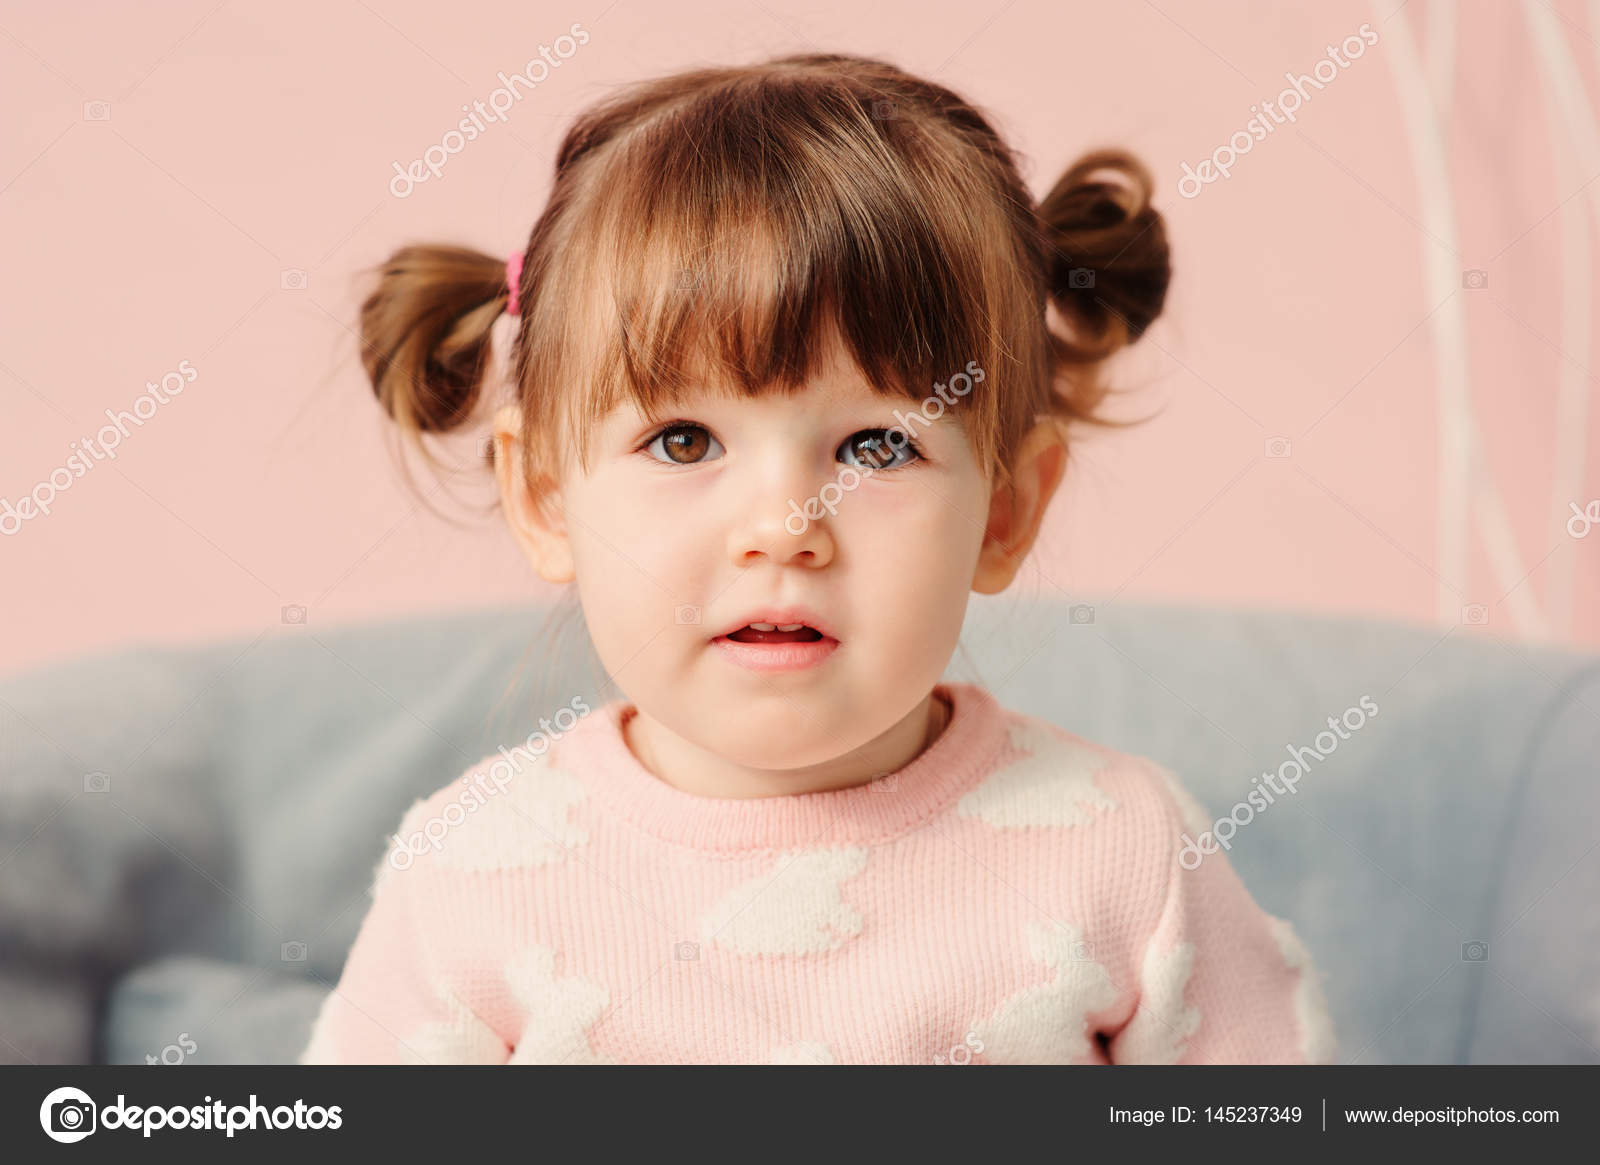 fc12618c804e Close up indoor portrait of cute happy 2 years old baby girl in pink  sweater– stock image